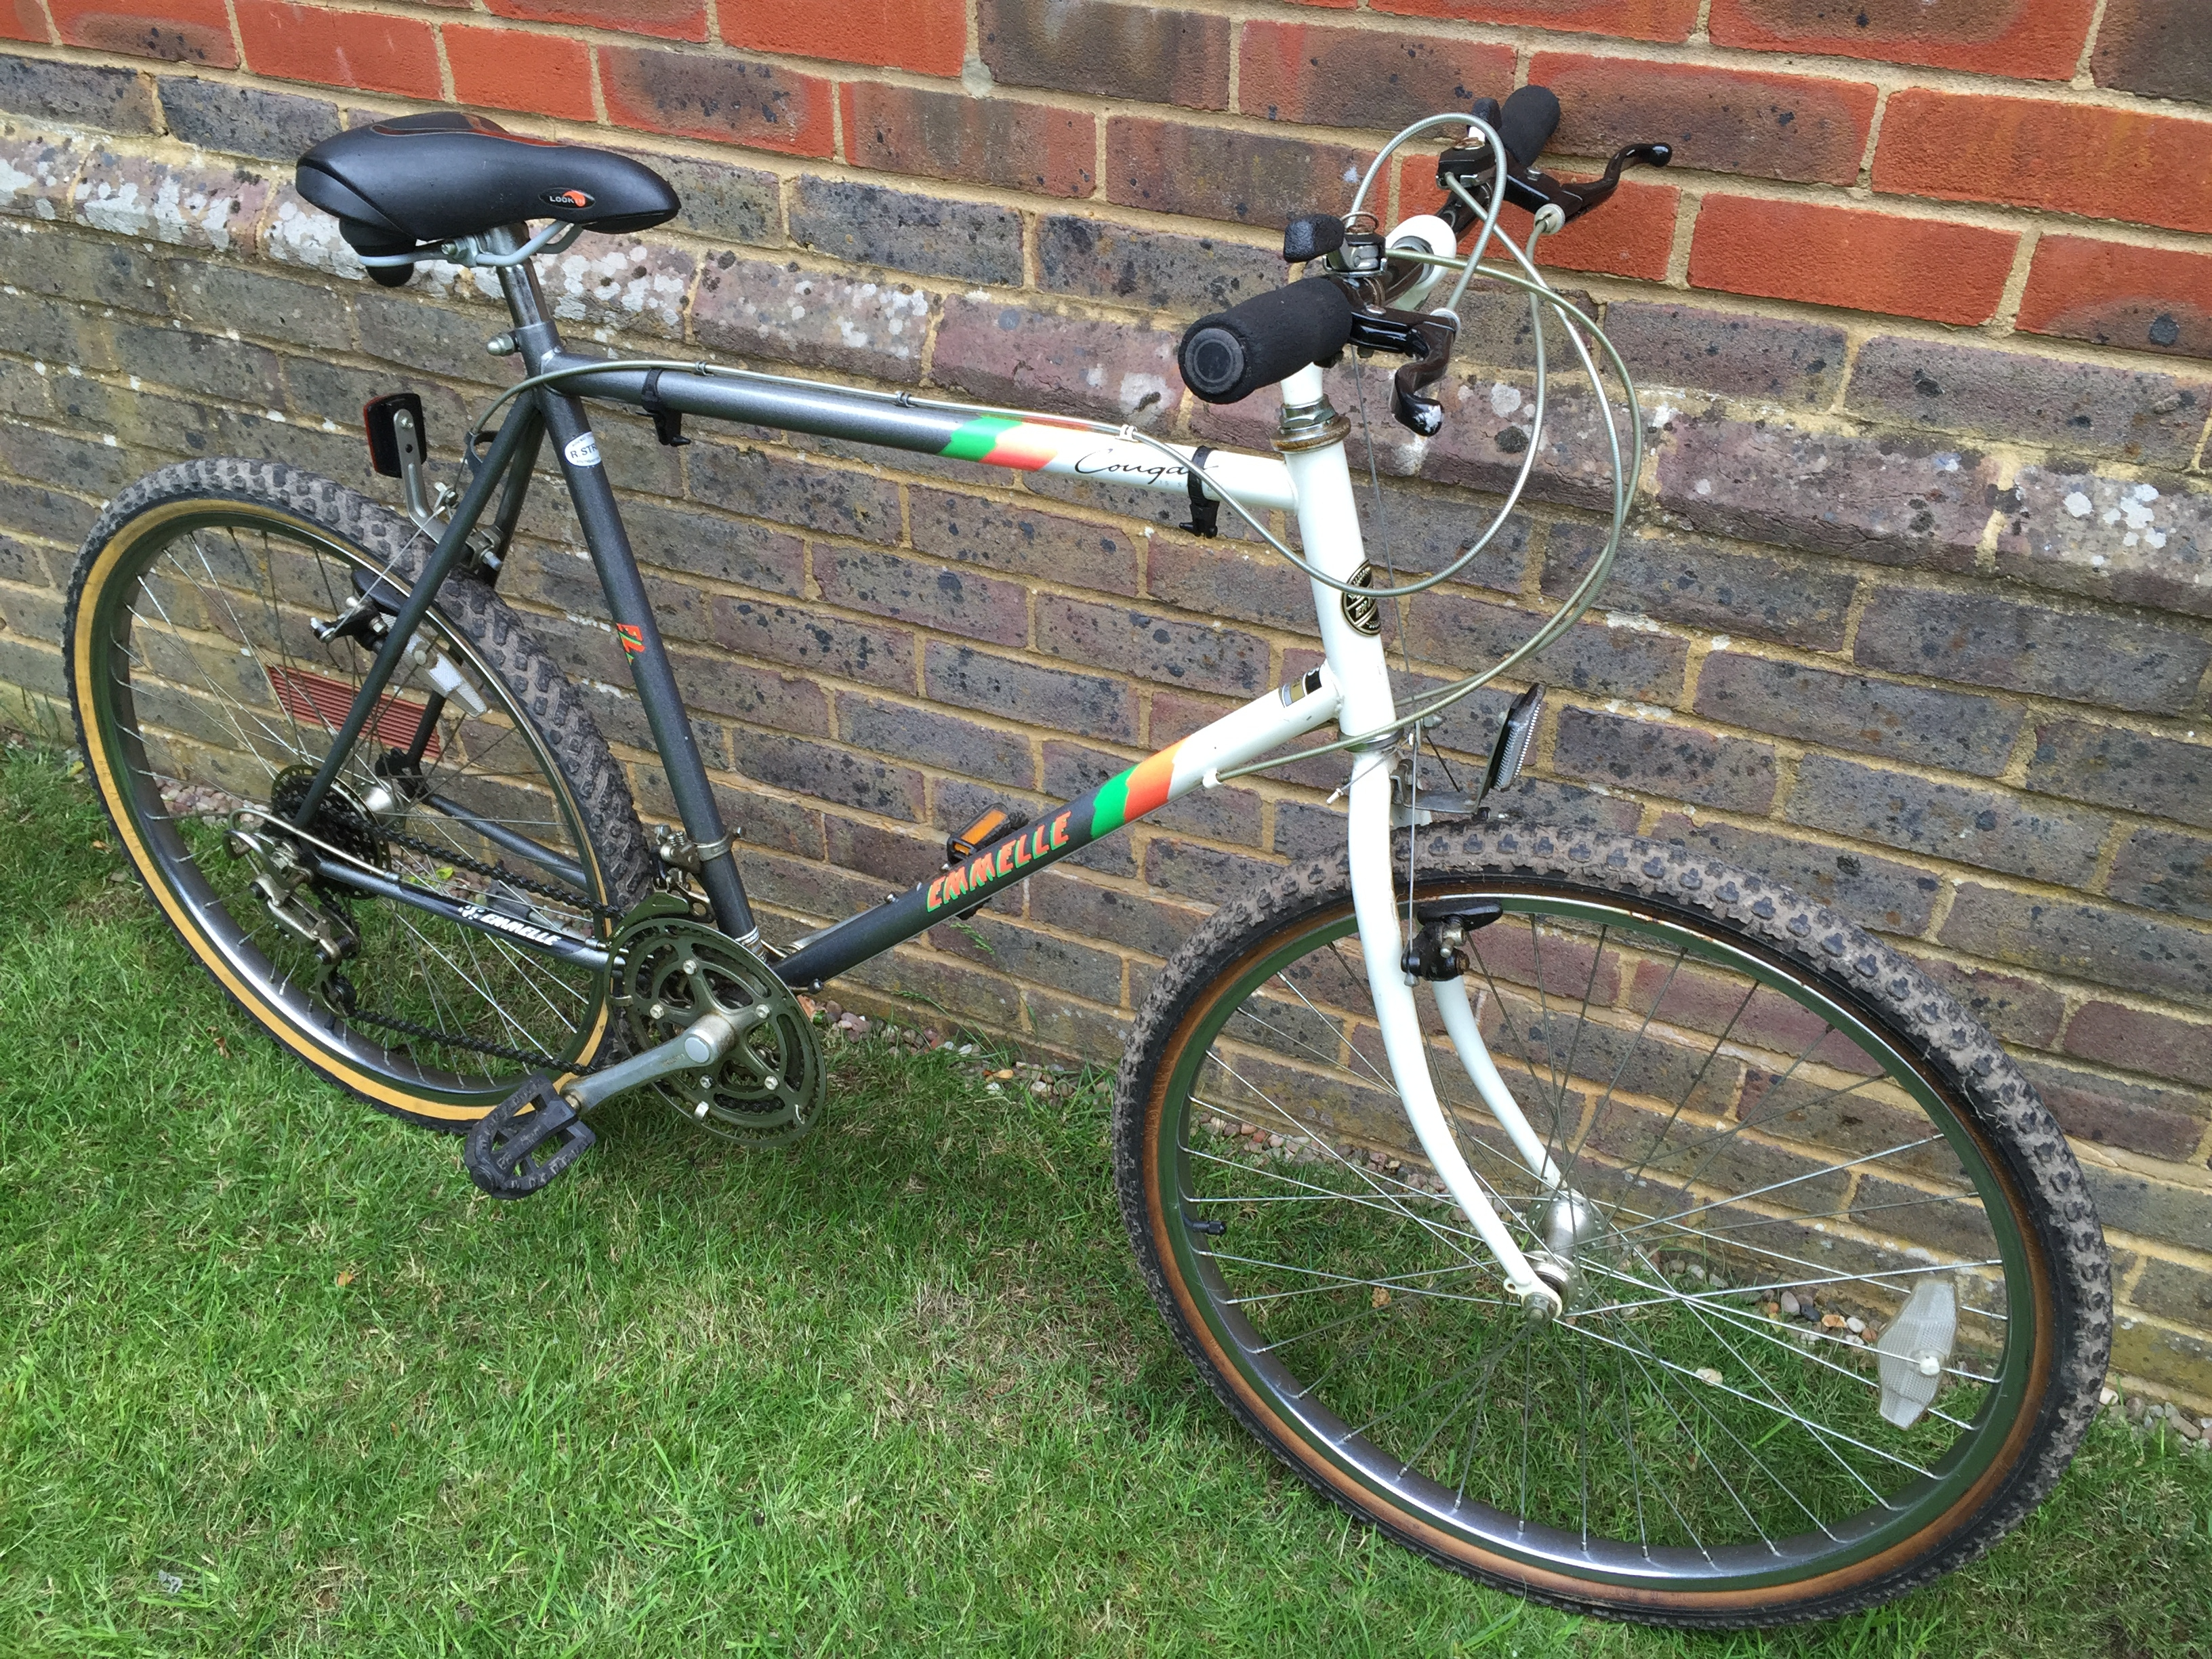 emelle cougar women Emmelle cougar 15 - retro city hybrid road bike in great condition teddington   ladies women's loop frame dutch style traditional road bike distance from.